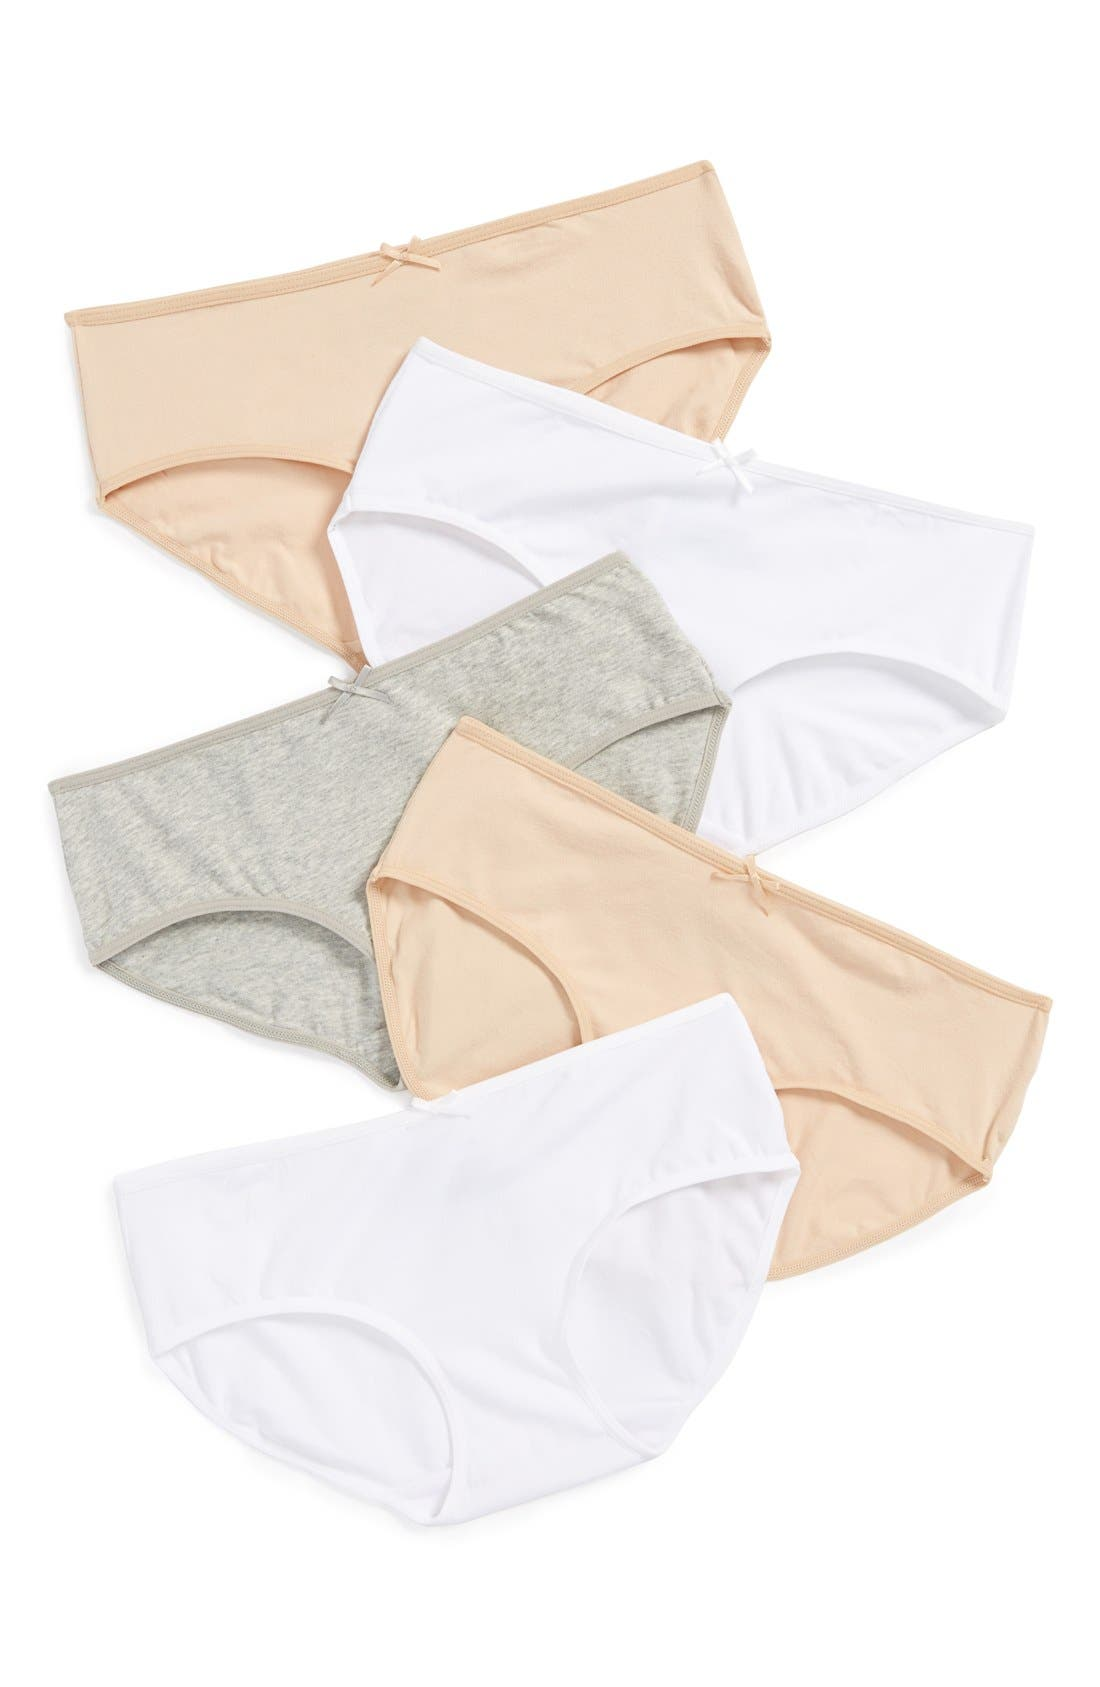 5-Pack Hipster Briefs,                             Main thumbnail 36, color,